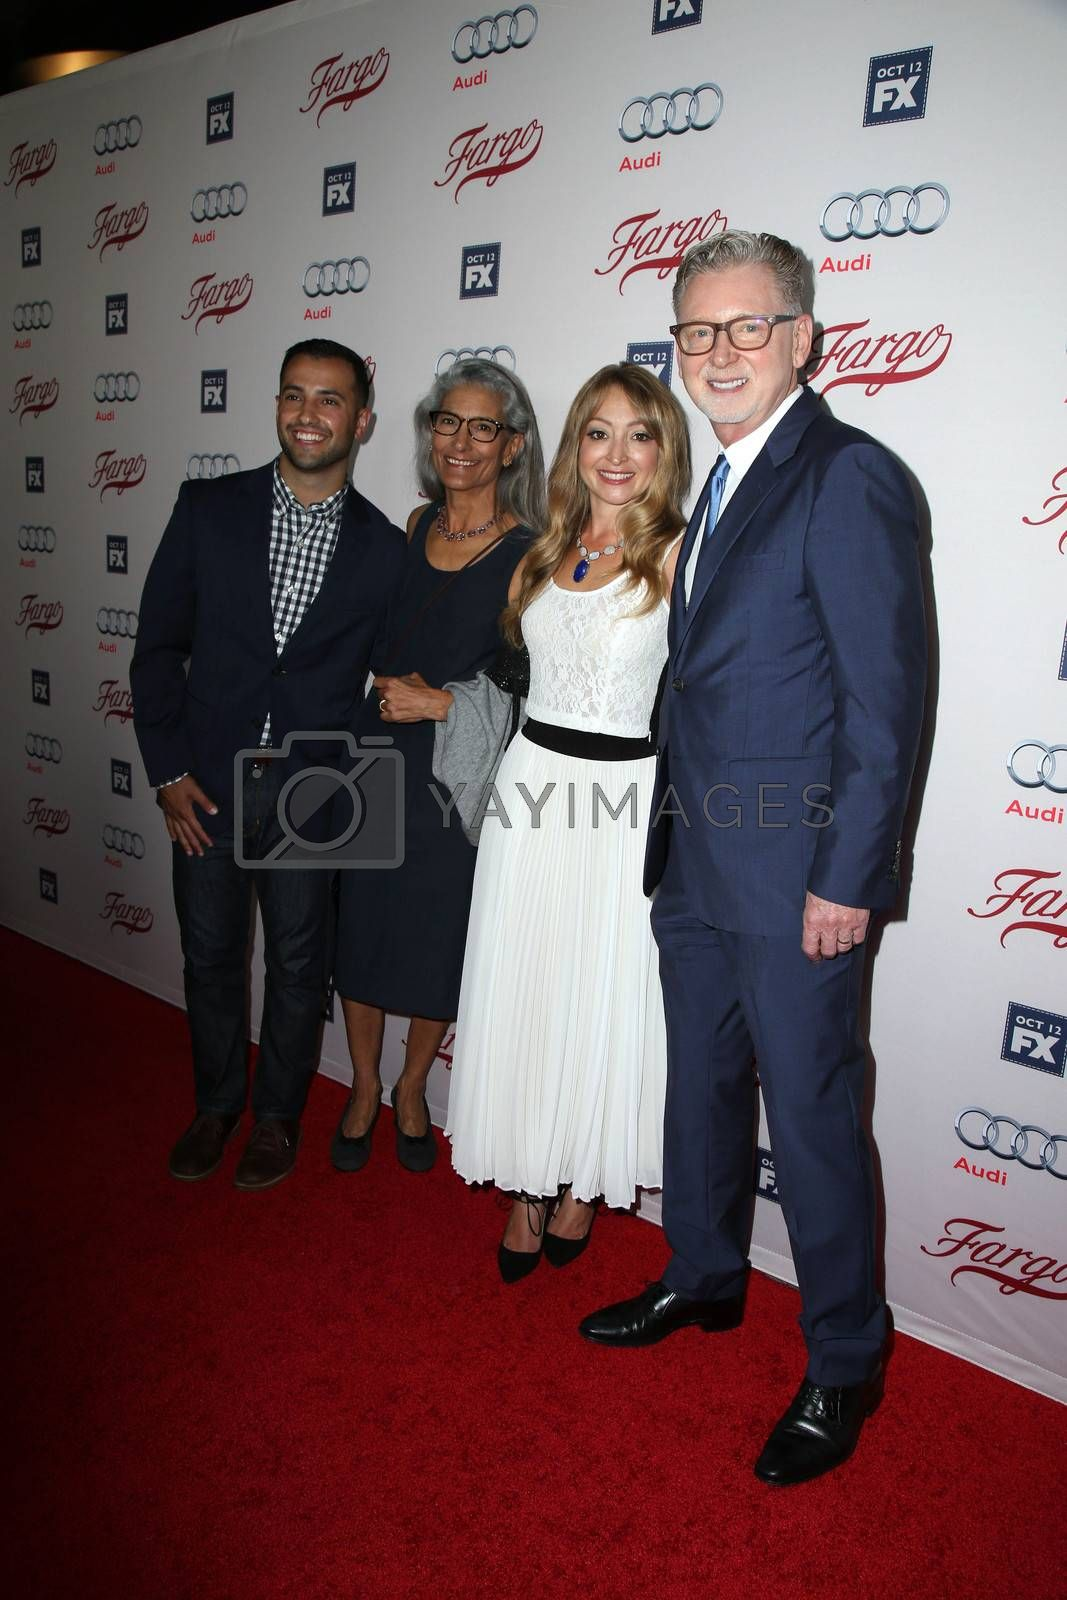 """Warren Littlefield at the """"Fargo"""" Season 2 Premiere Screening, ArcLight, Hollywood, CA 10-07-15/ImageCollect by ImageCollect"""